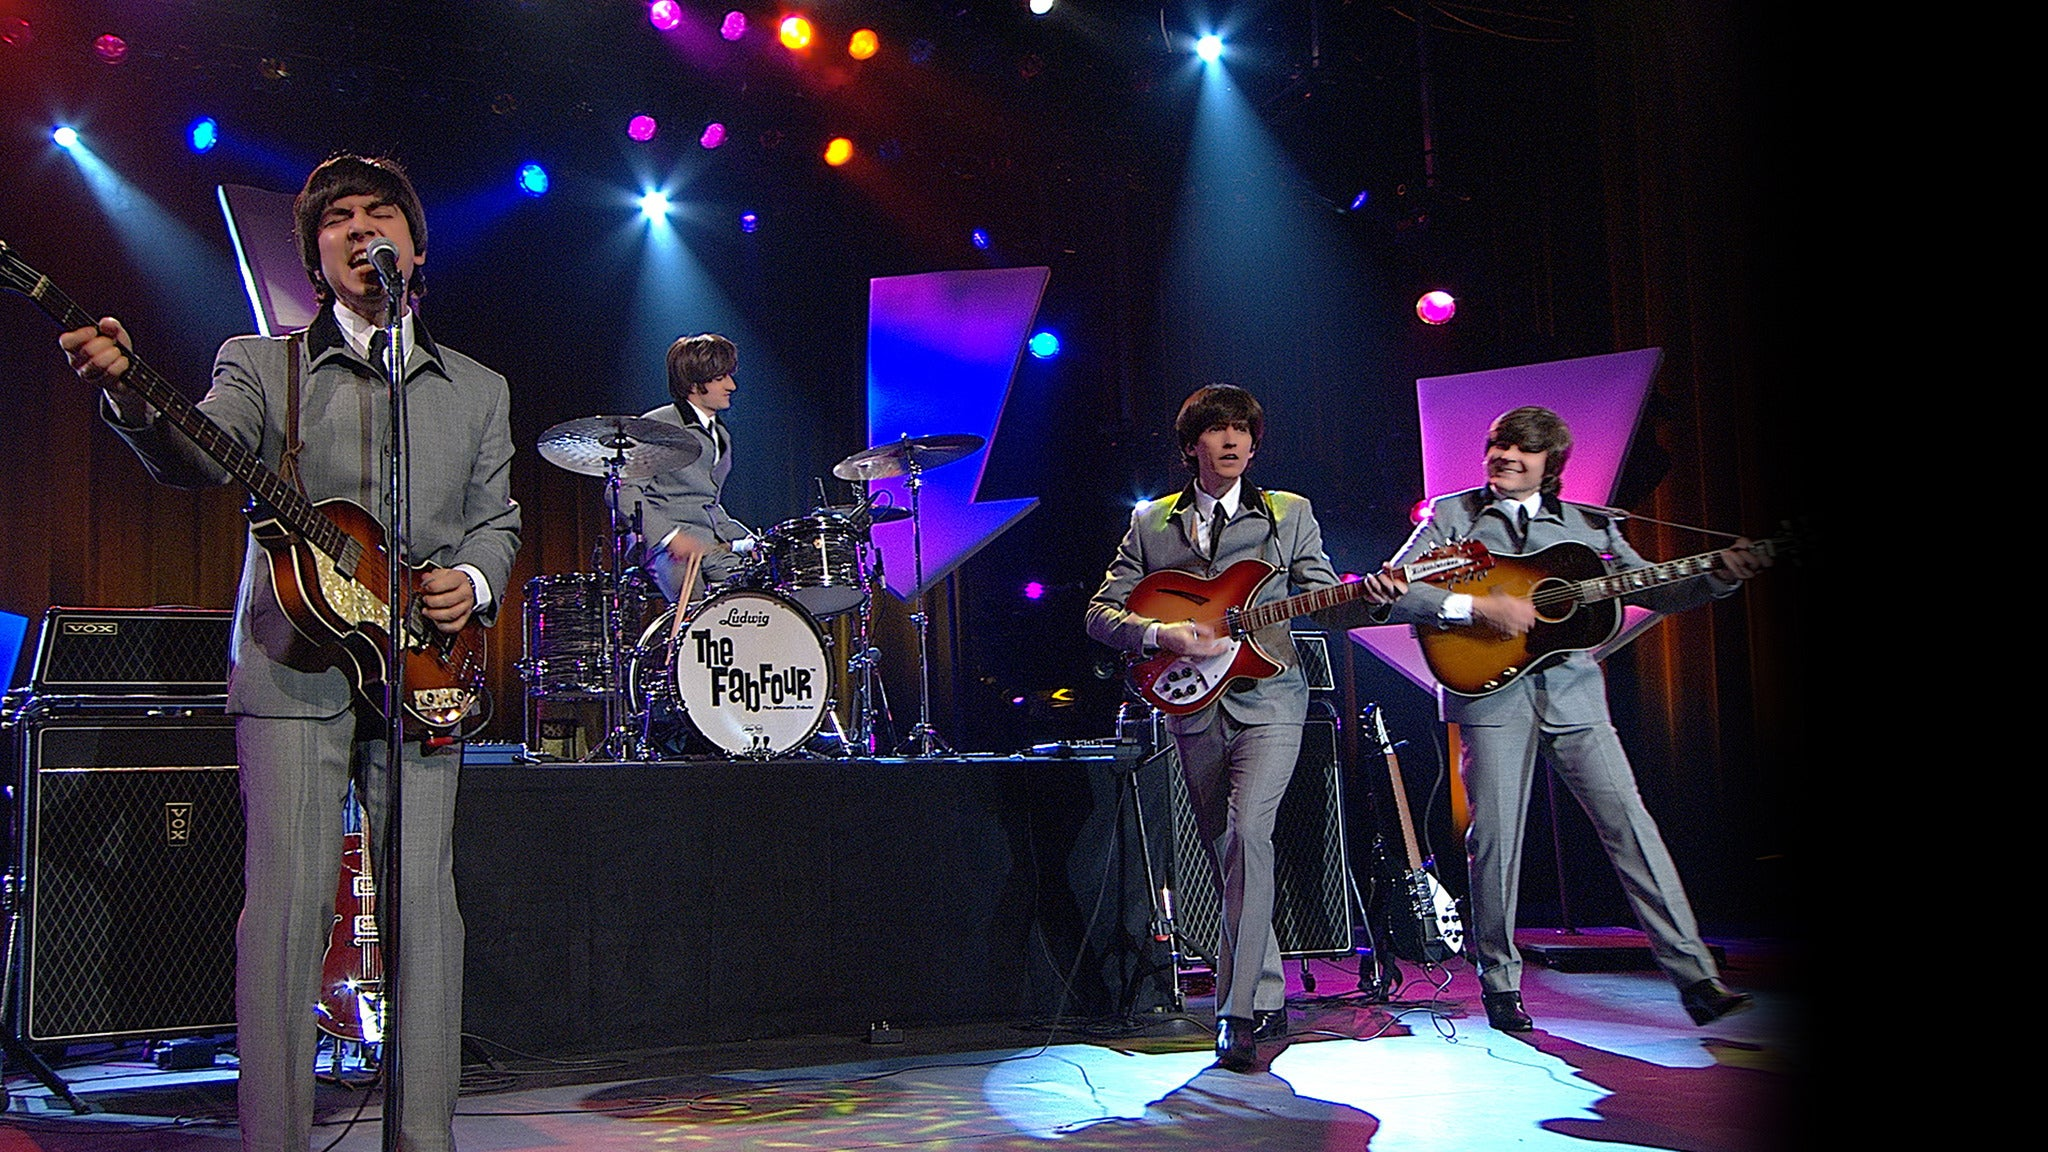 The Fab Four at Alabama Theatre